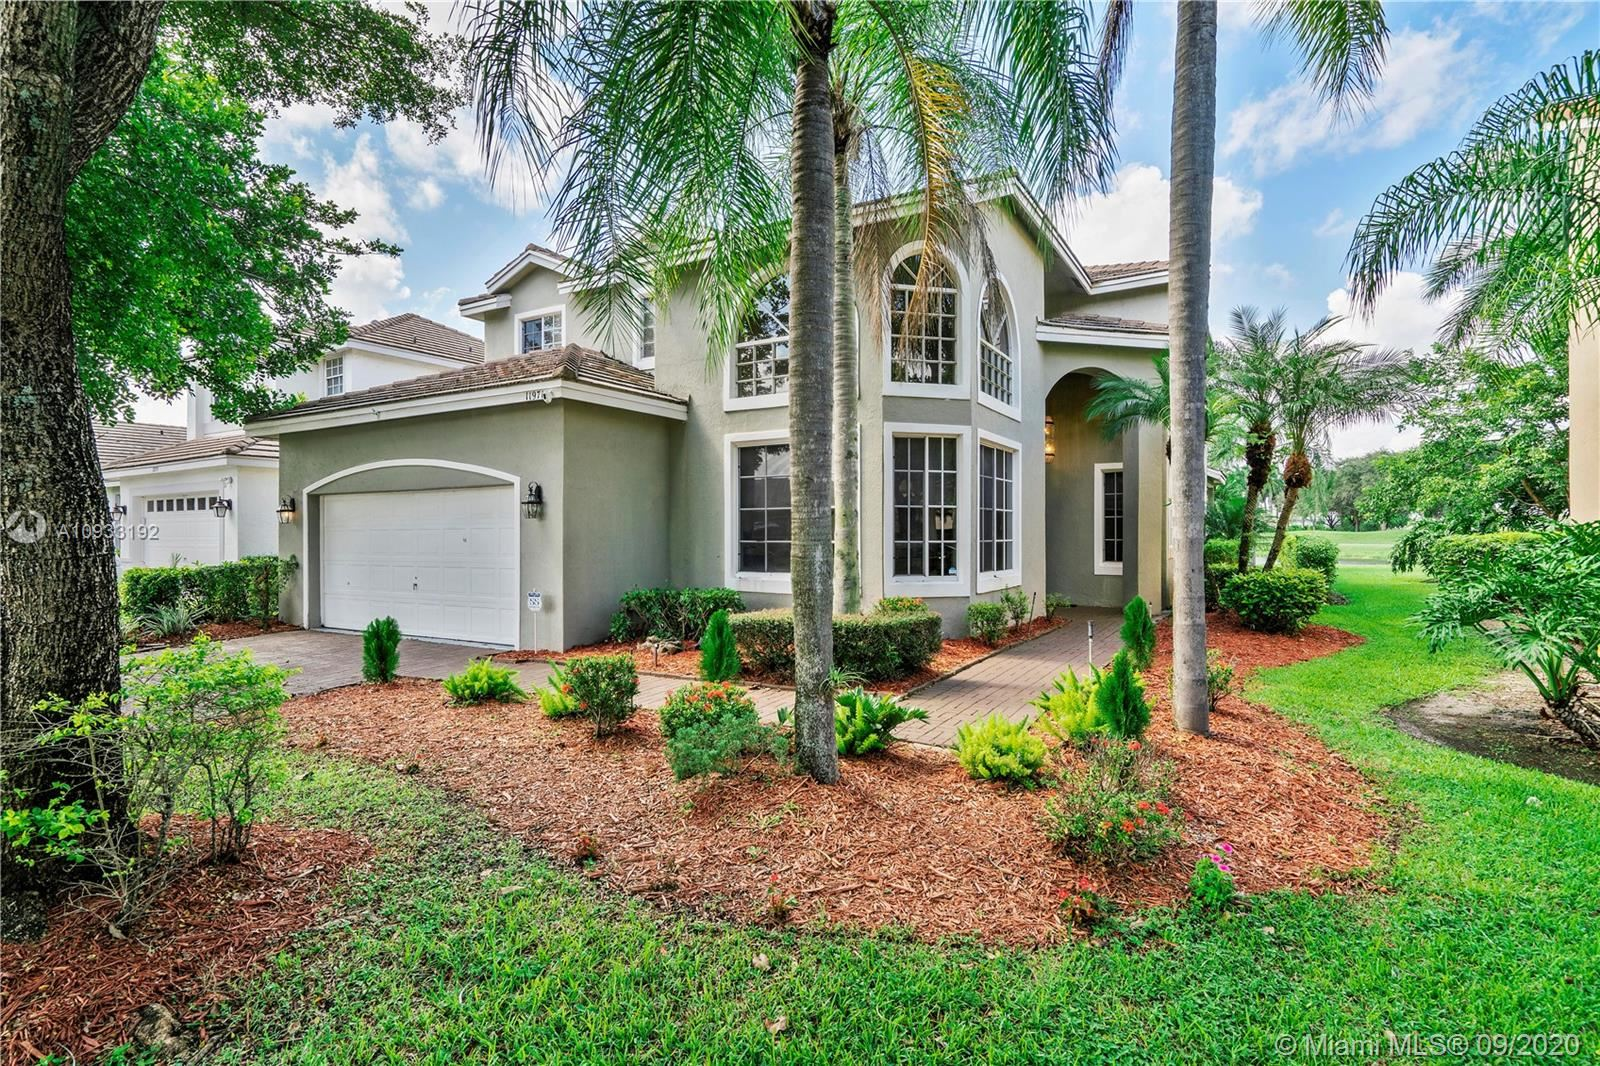 11971 Glenmore Dr, Coral Springs, FL 33071 - #: A10933192